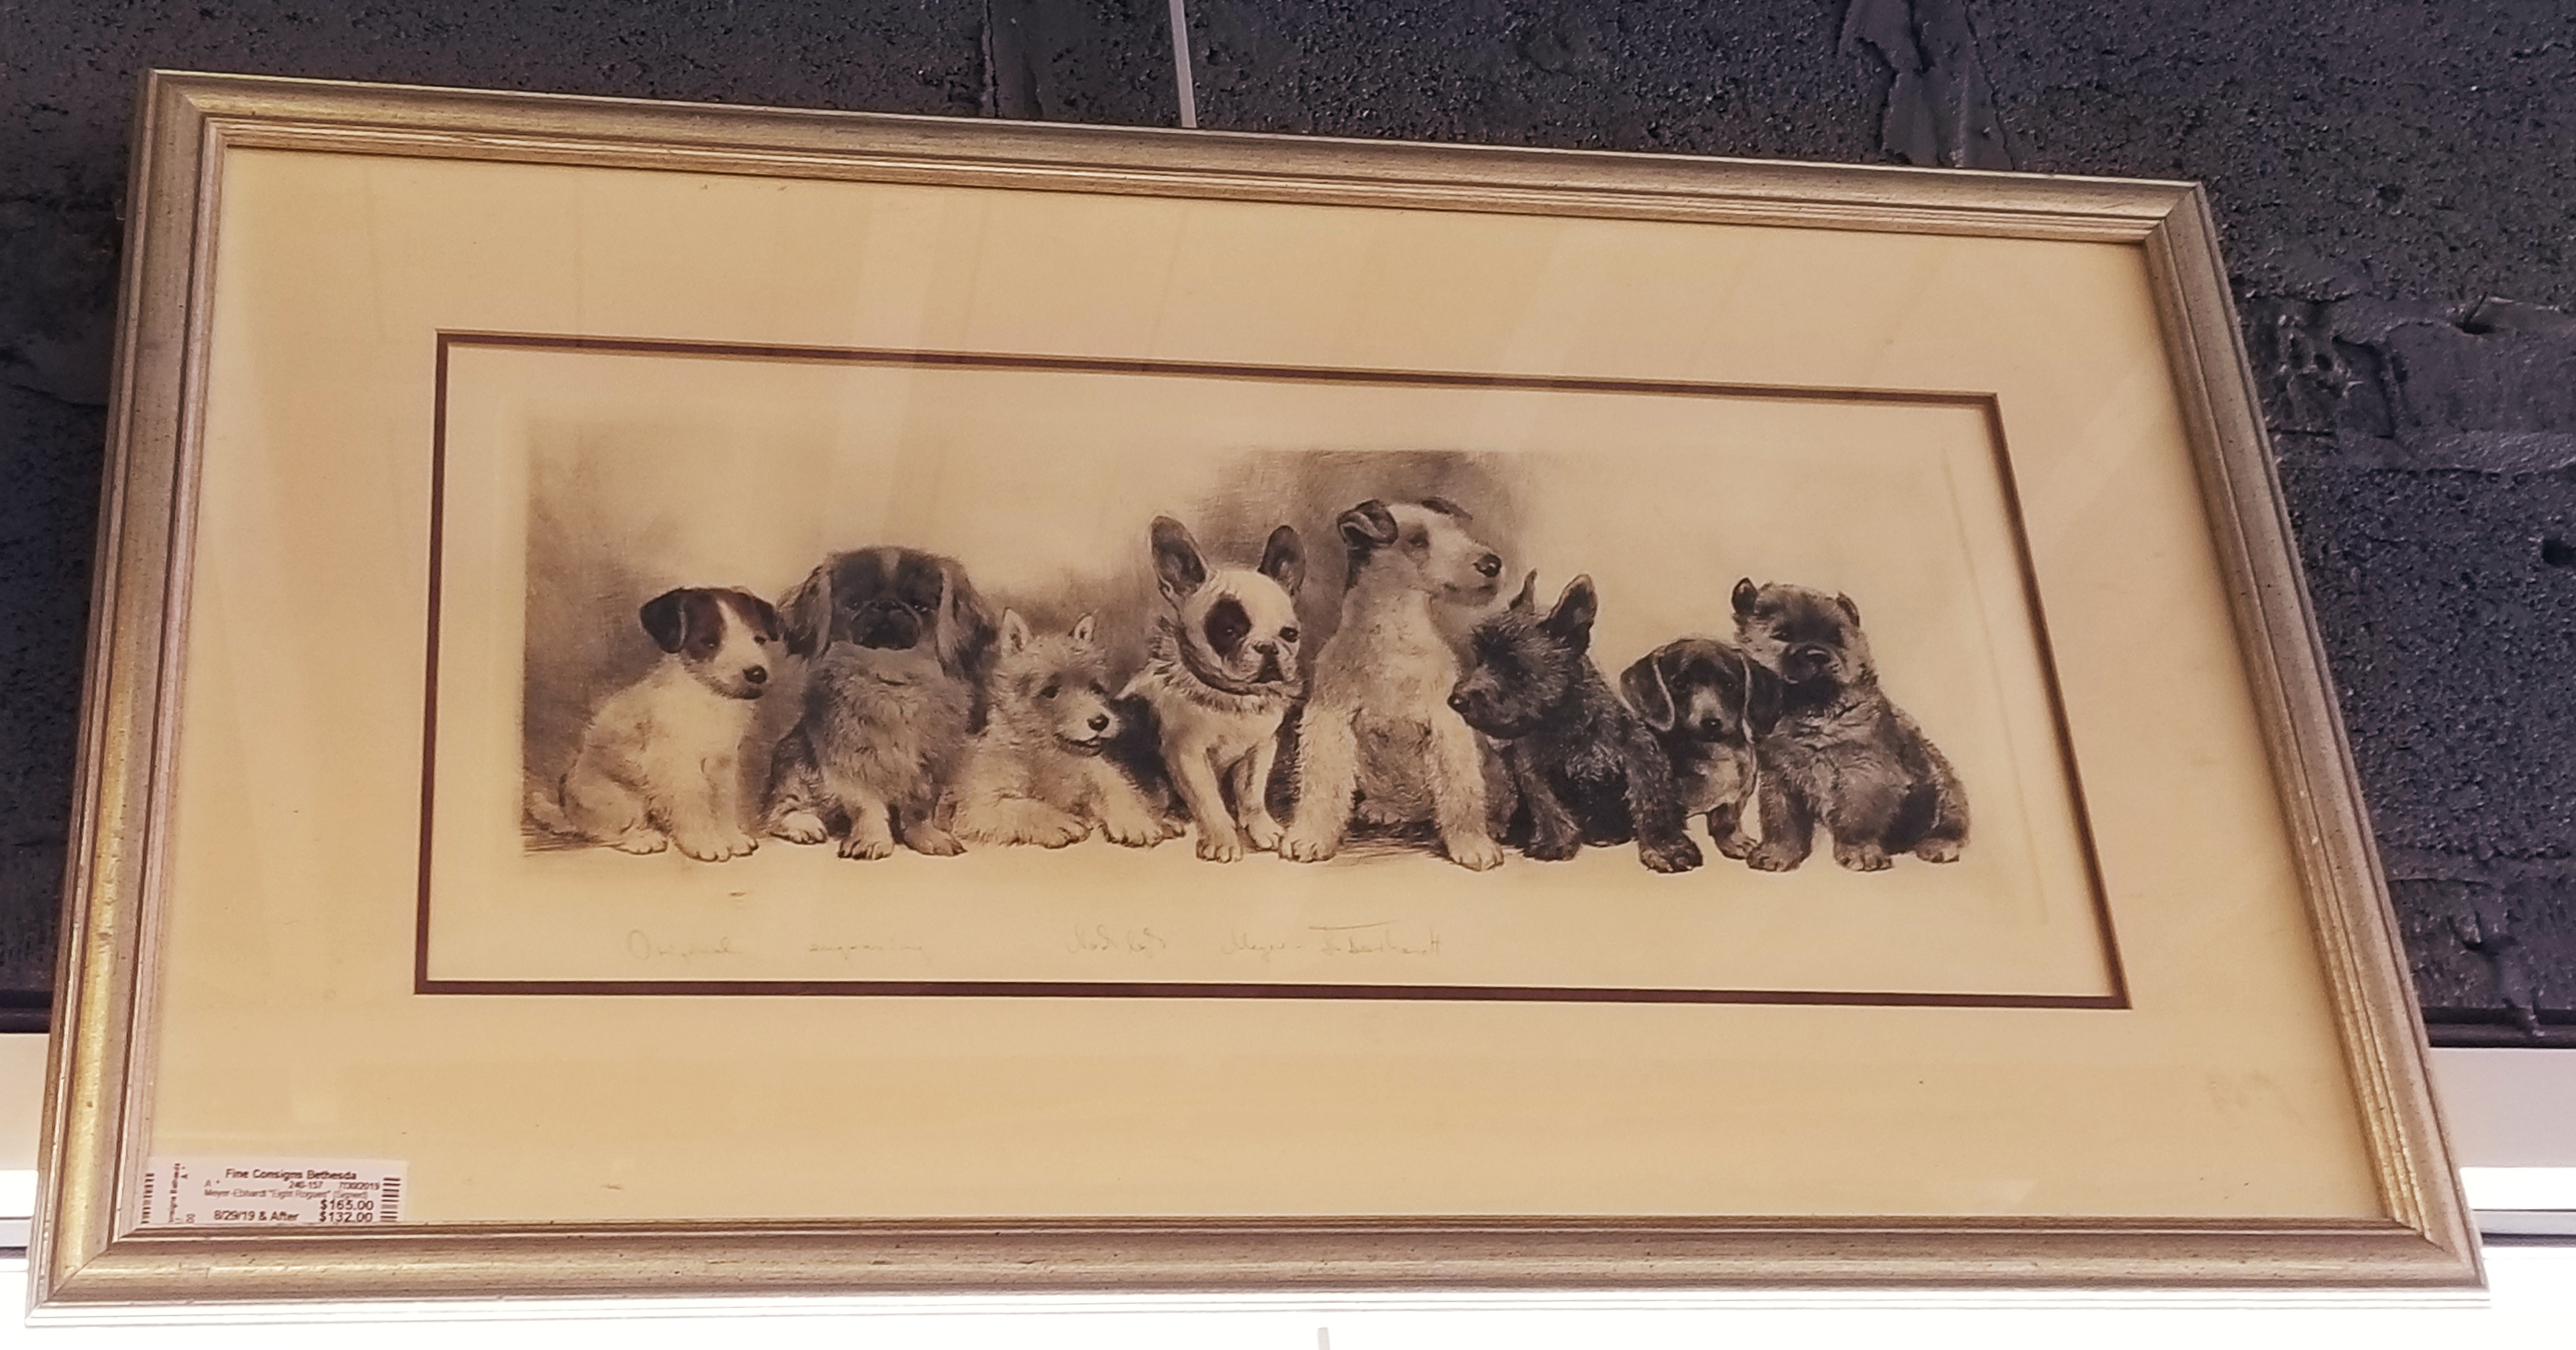 Hand drawing of small dogs